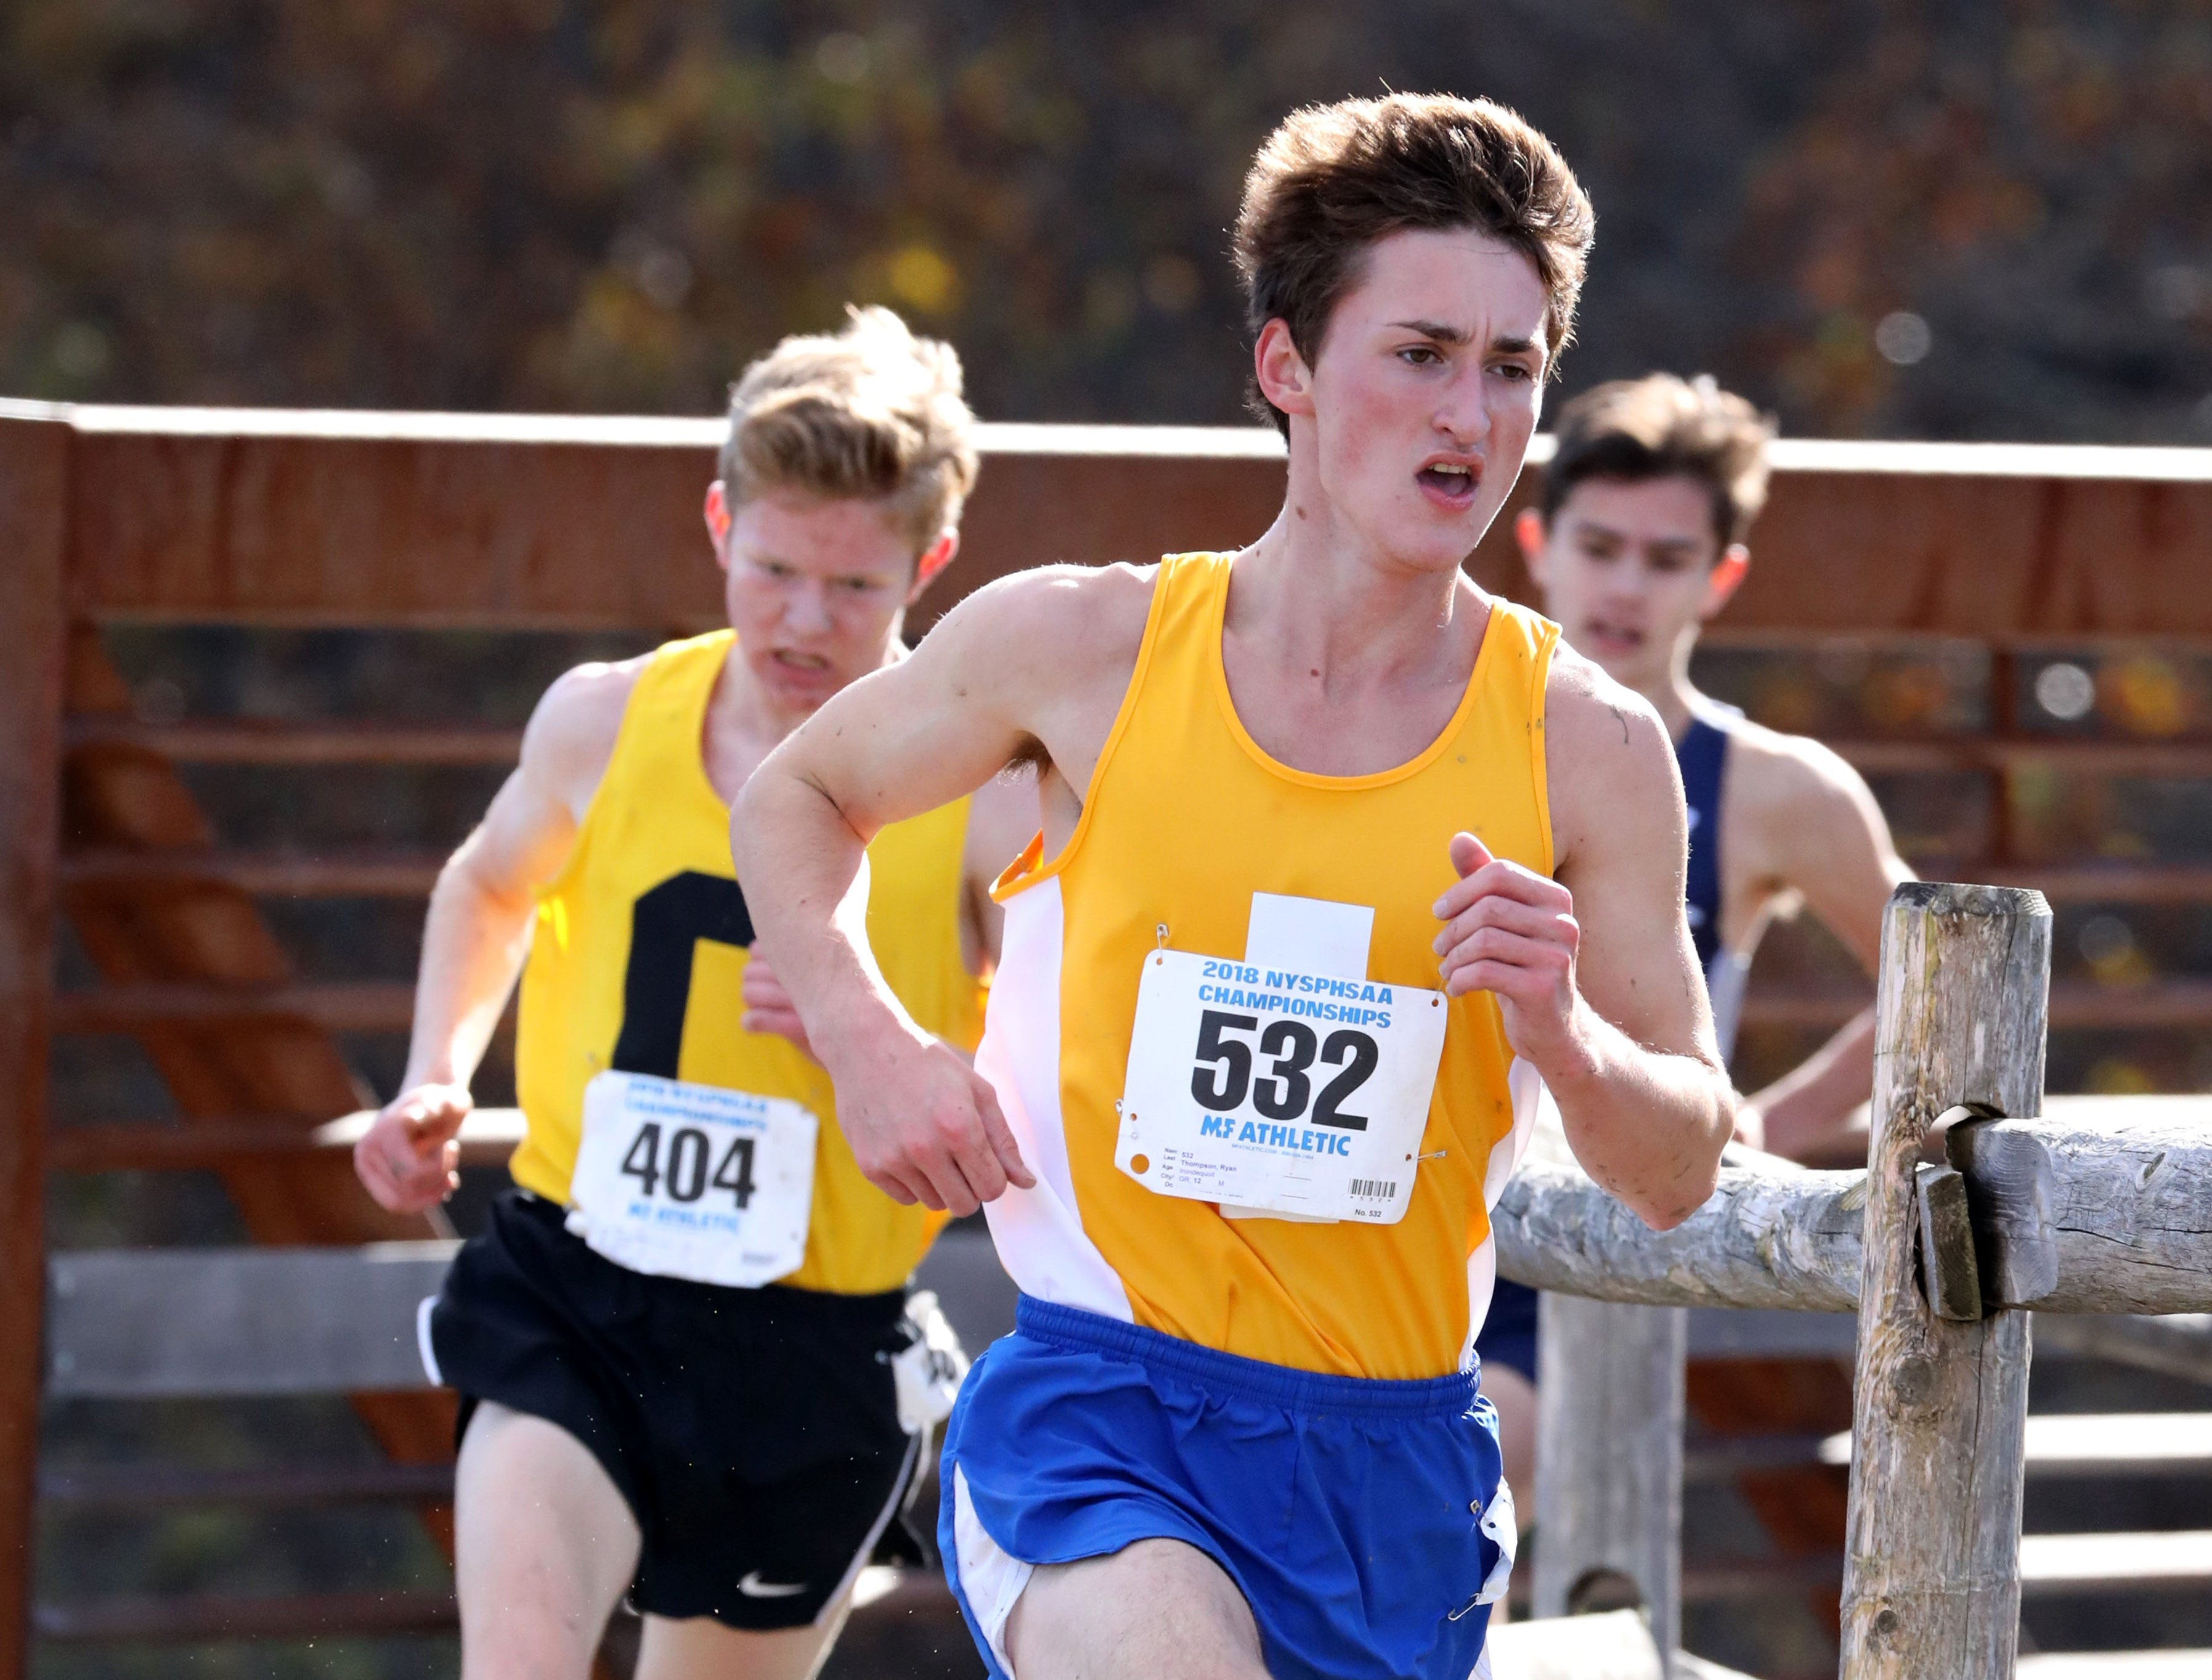 Ryan Thompson from Irondequoit, runs the boys Class A race during the 2018 NYSPHSAA Cross Country Championships at Sunken Meadow State Park in Kings Park on Nov. 10, 2018.